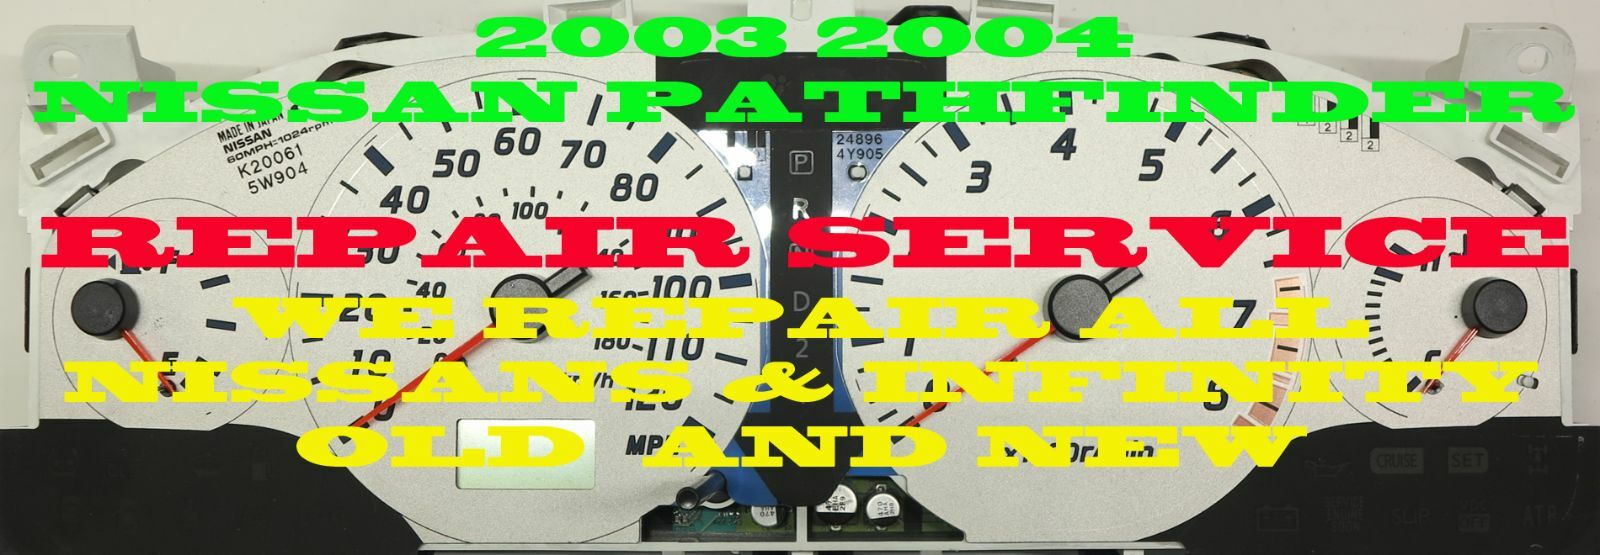 02 03 04 REPAIR SERVICE FOR NISSAN PATHFINDER FUEL GAUGE ONLY 2002 2003 2004